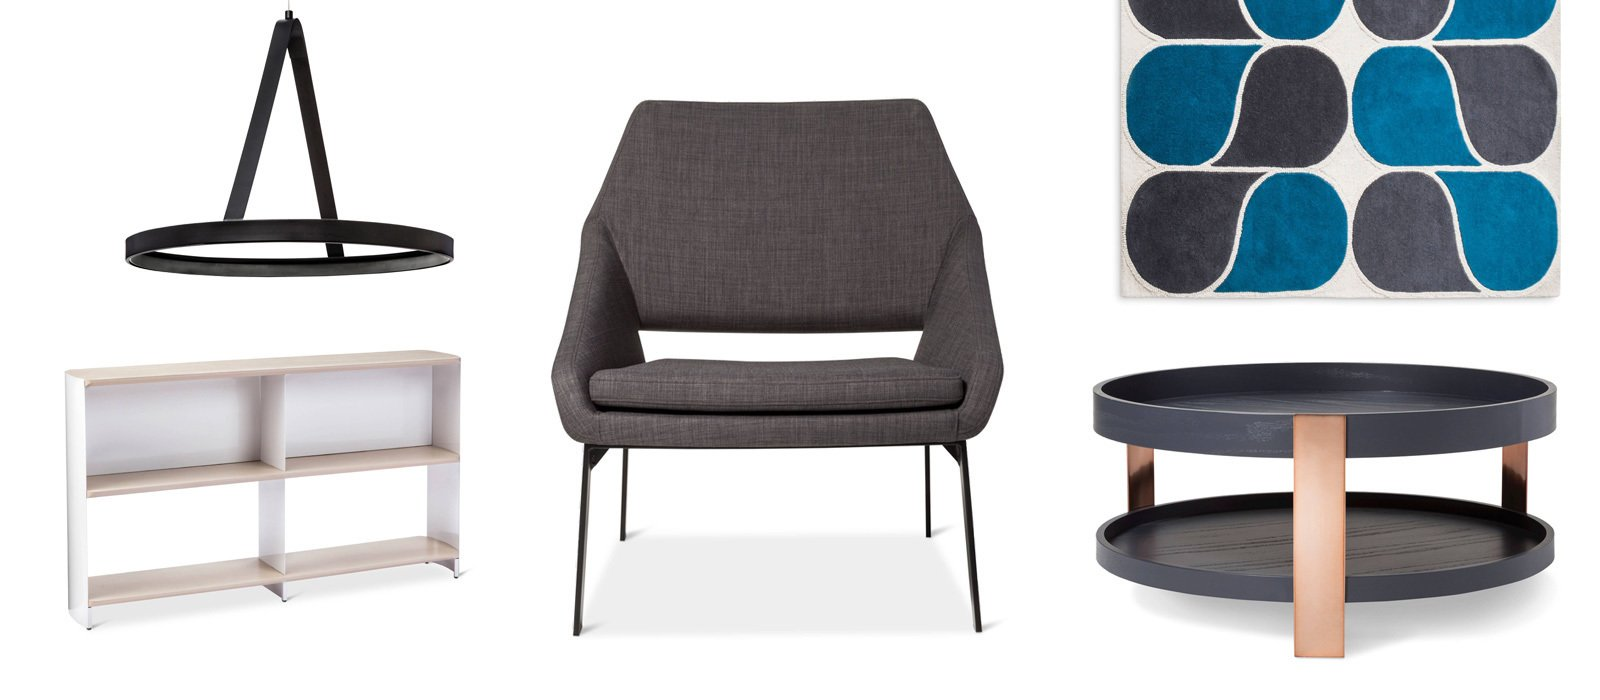 Photo 1 of 1 in 5 Picks to Refresh Your Living Room With the New Dwell x Target Collection